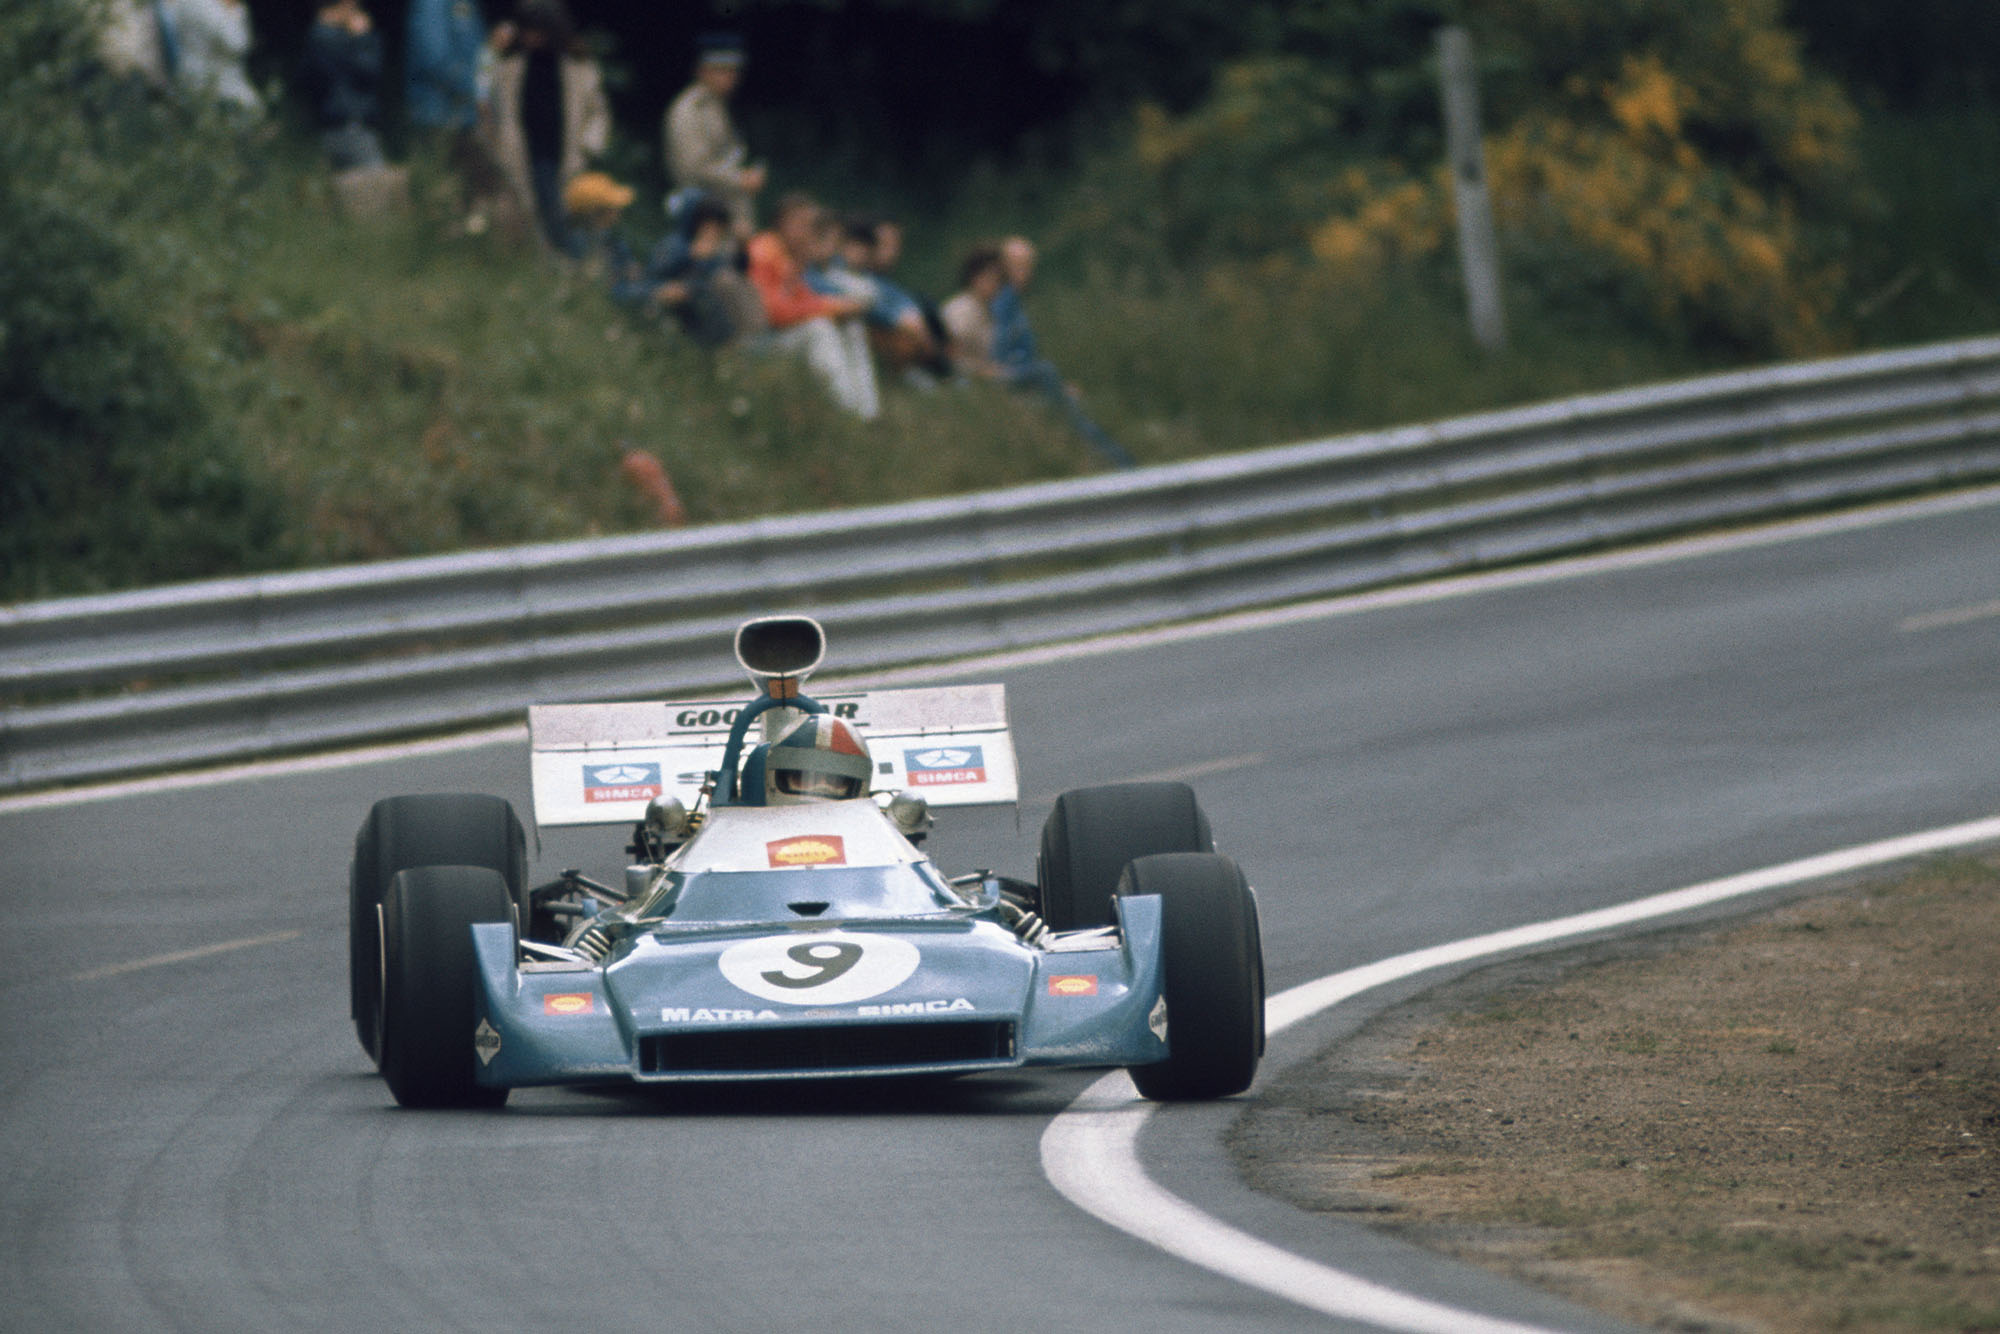 Chris Amon corners in his Matra at the 1972 French Grand Prix.